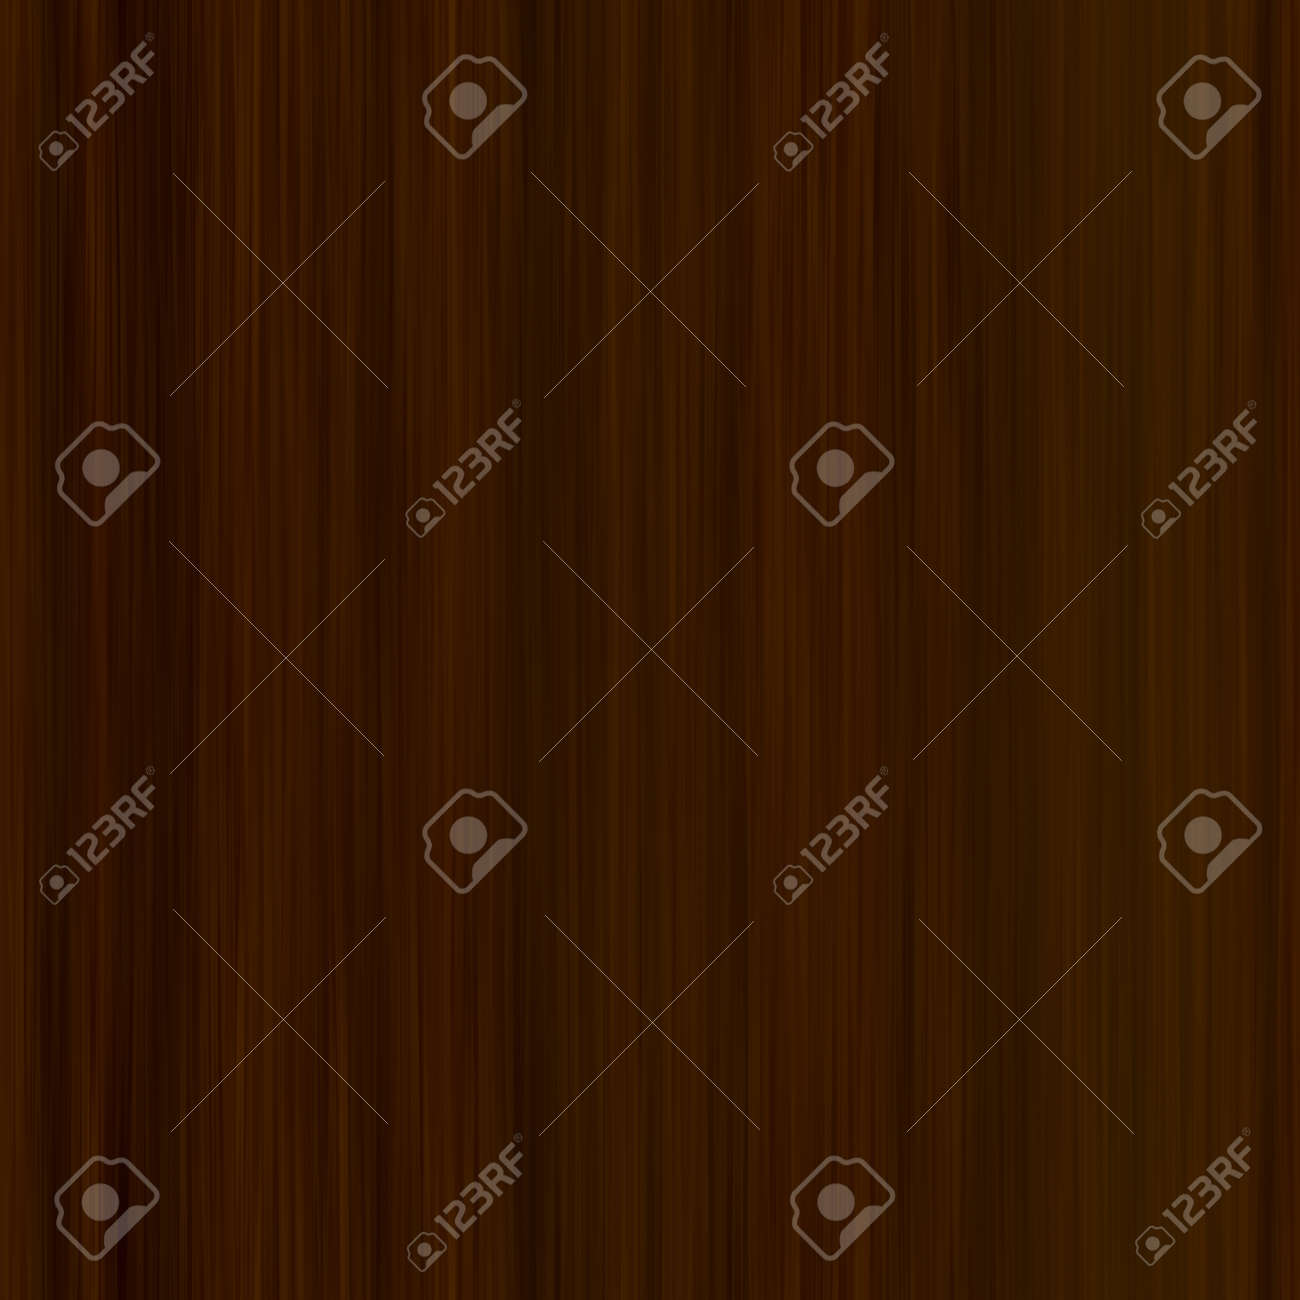 dark hardwood texture. High Quality Resolution Seamless Wood Texture. Dark Hardwood Part Of Parquet. Wooden Striped Texture O